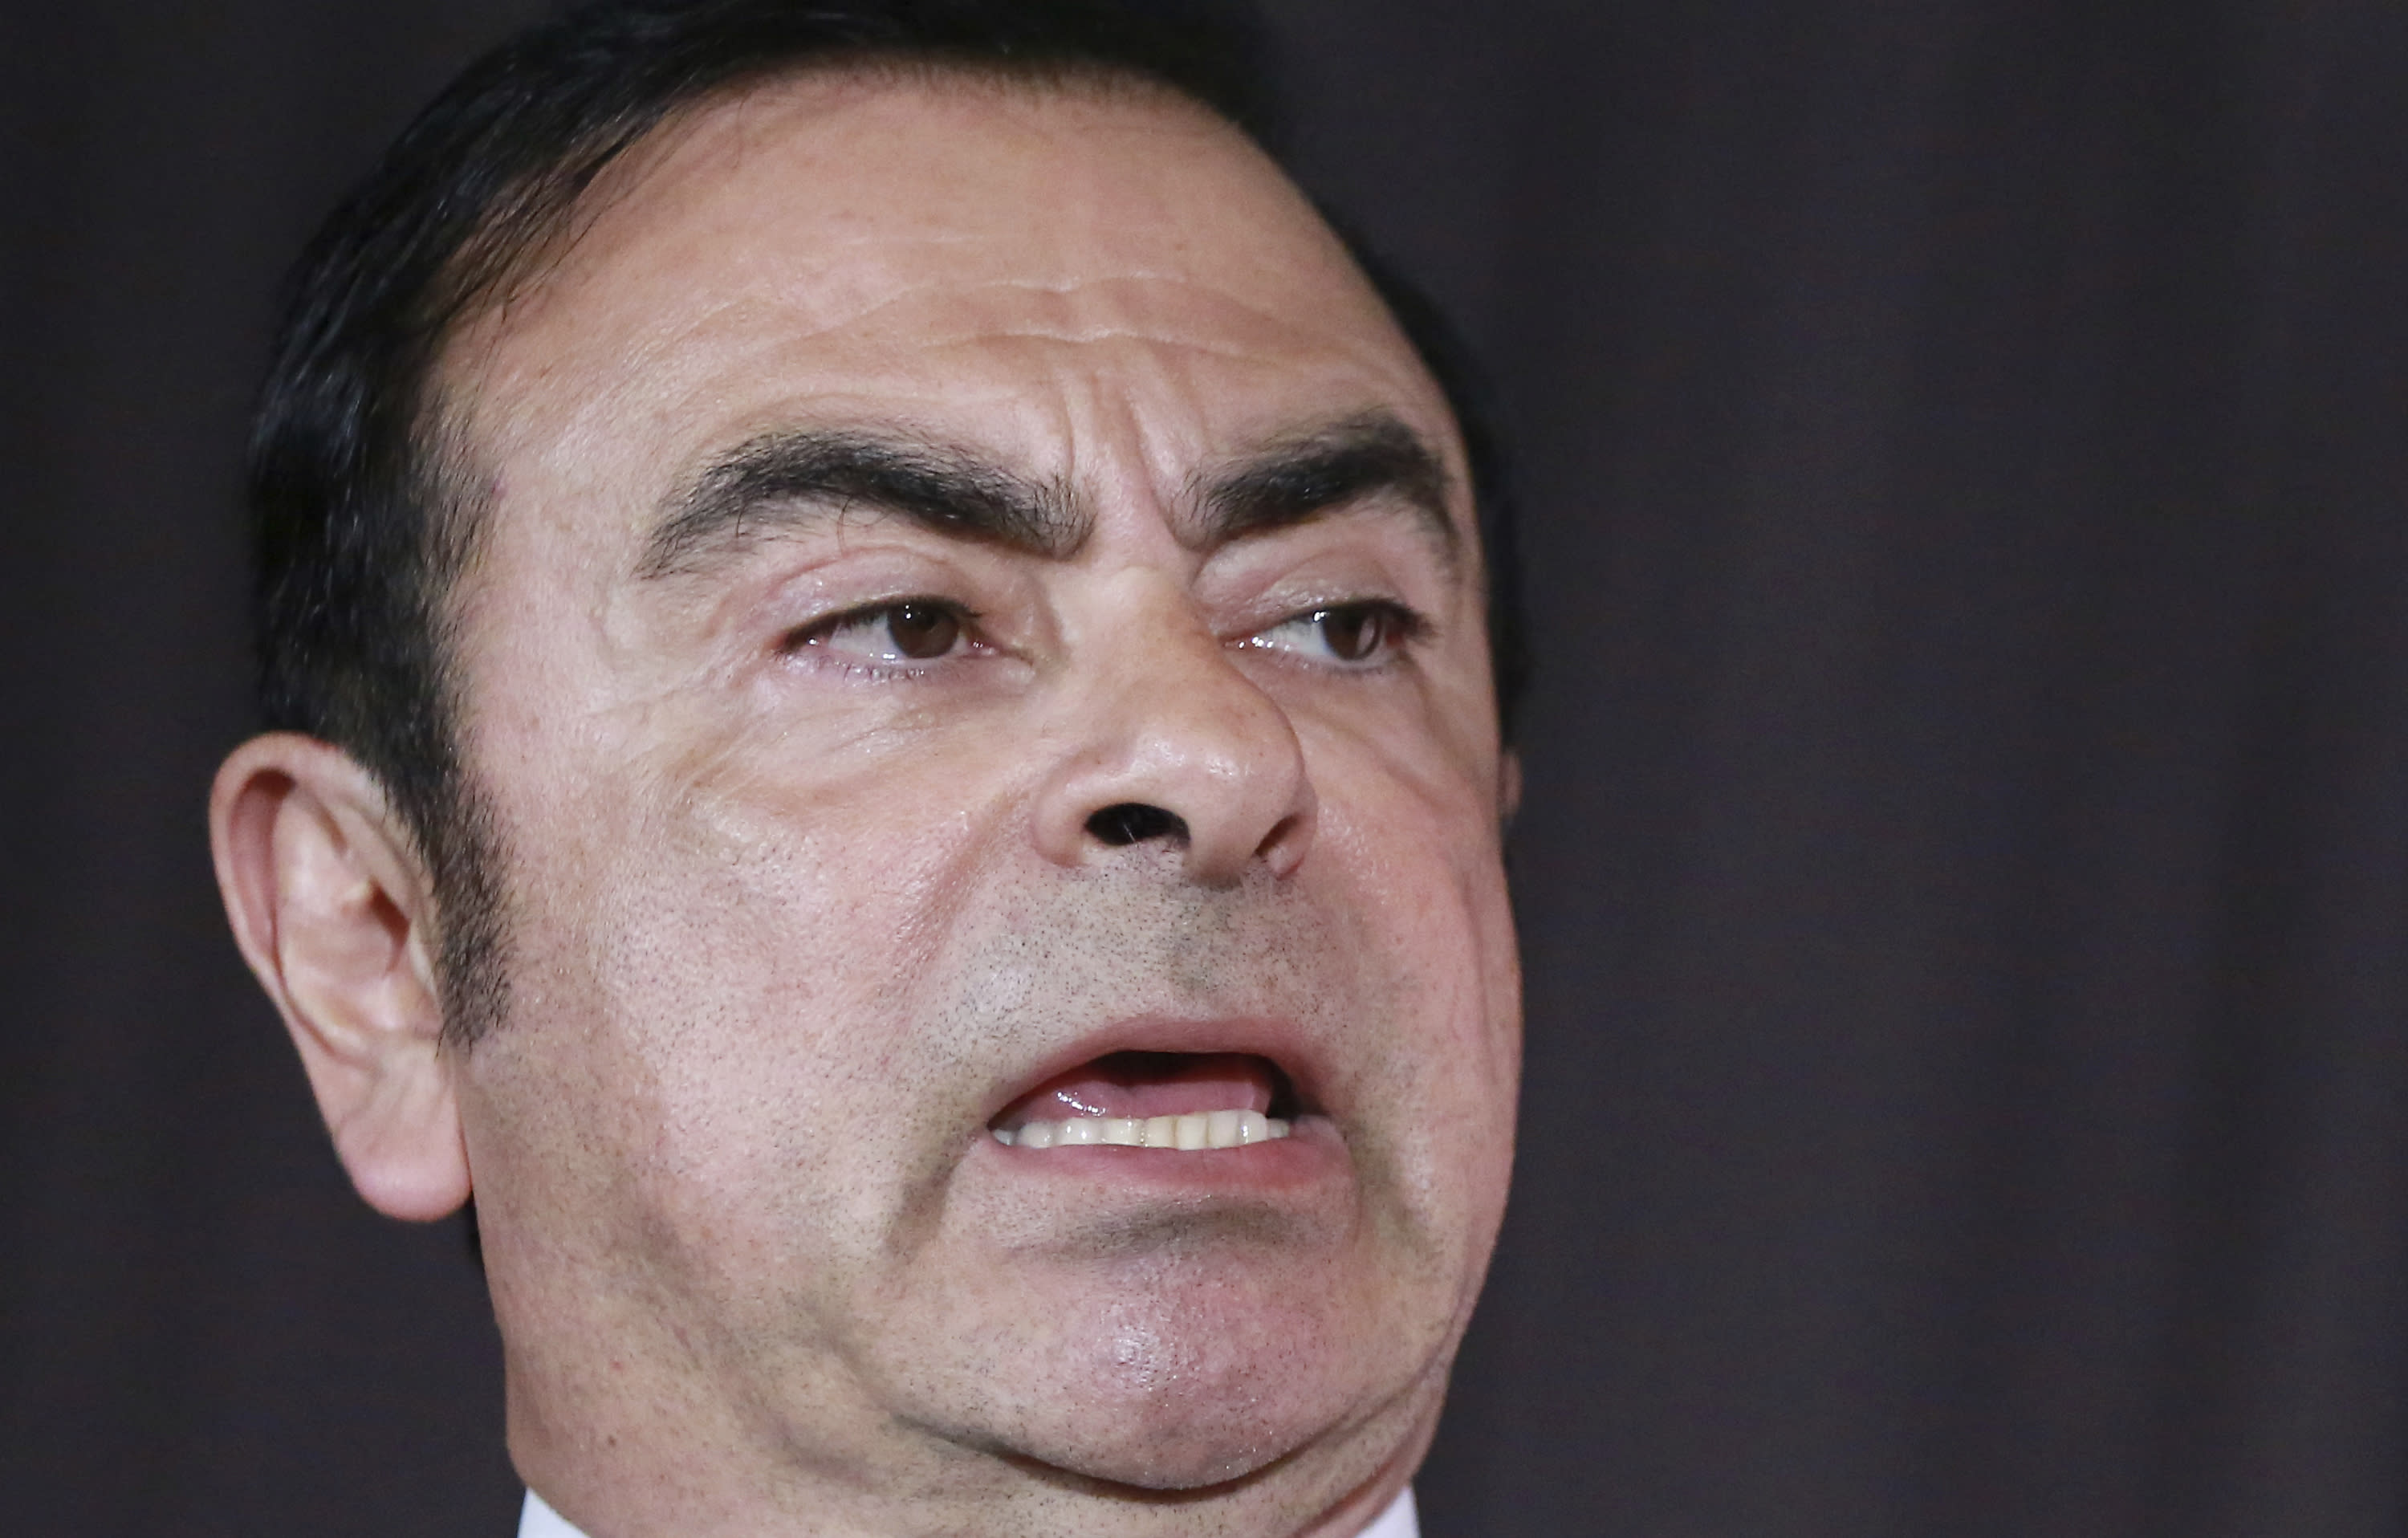 In this May 12, 2016, photo, then Nissan Motor Co. President and CEO Carlos Ghosn speaks during the press conference in Yokohama, near Tokyo. The children of former Nissan chairman Carlos Ghosn, who is under arrest in Tokyo, have defended their father's love for Japan and denounced comments by the Japanese automaker's chief executive. The statement from Caroline, Nadine, Maya and Anthony Ghosn, seen Monday, March 4, 2019 by The Associated Press, says Ghosn had affection and respect for Japan and Nissan Motor Co. (AP Photo/Eugene Hoshiko)